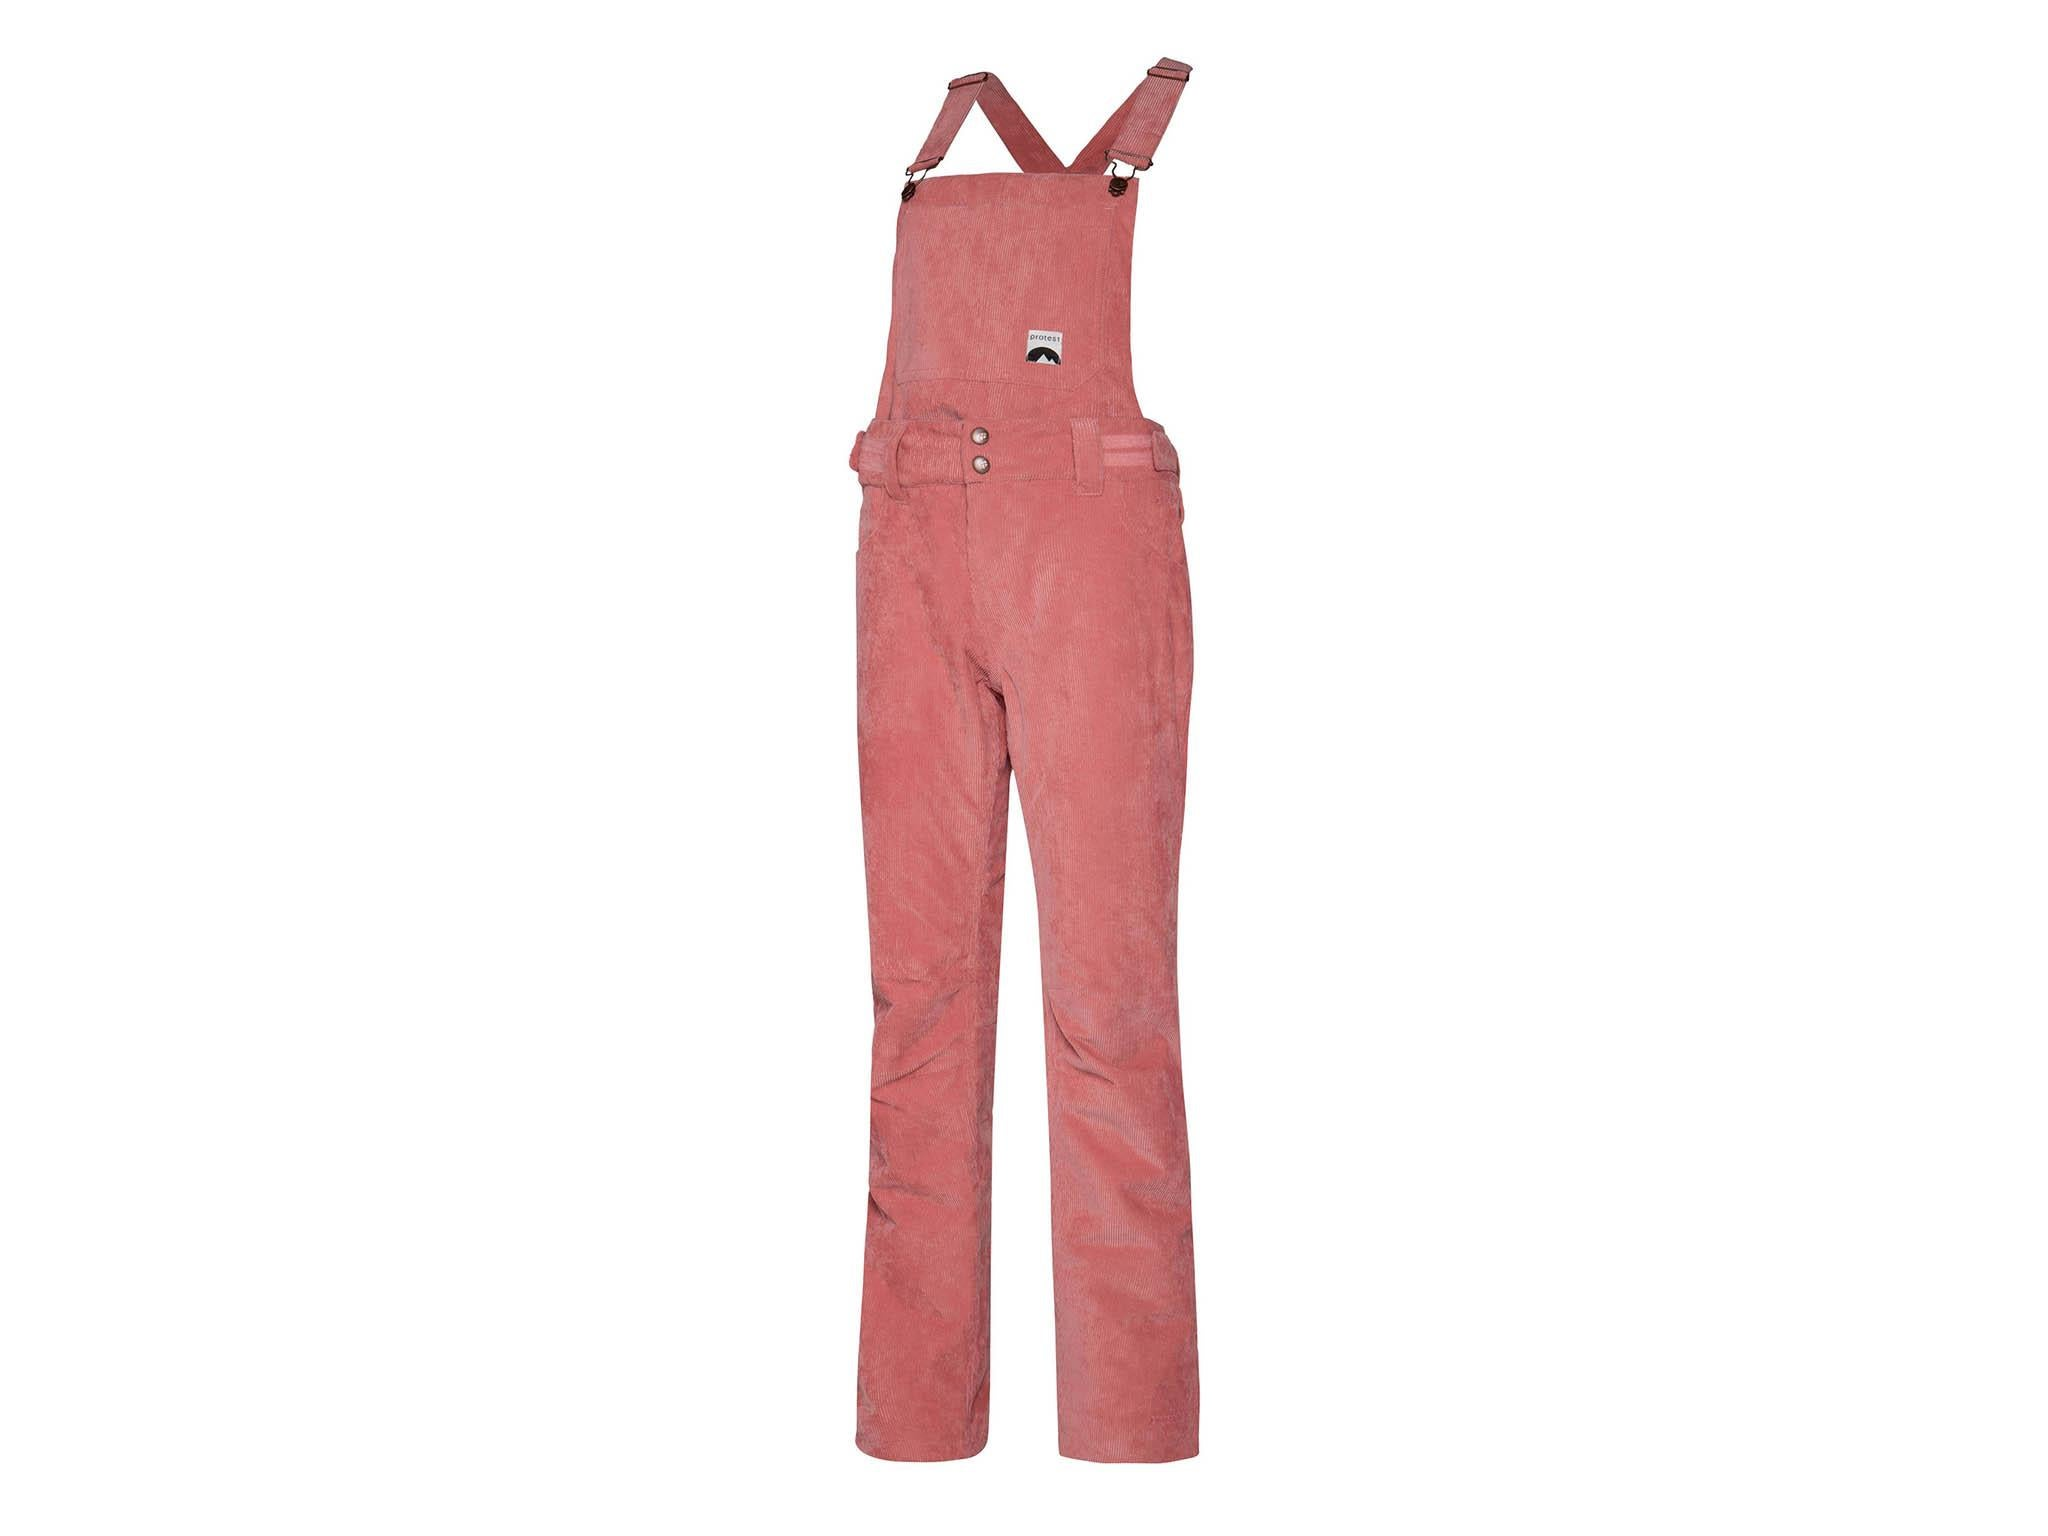 Rally Combination Overalls Work Clothes Gardeners Clothing